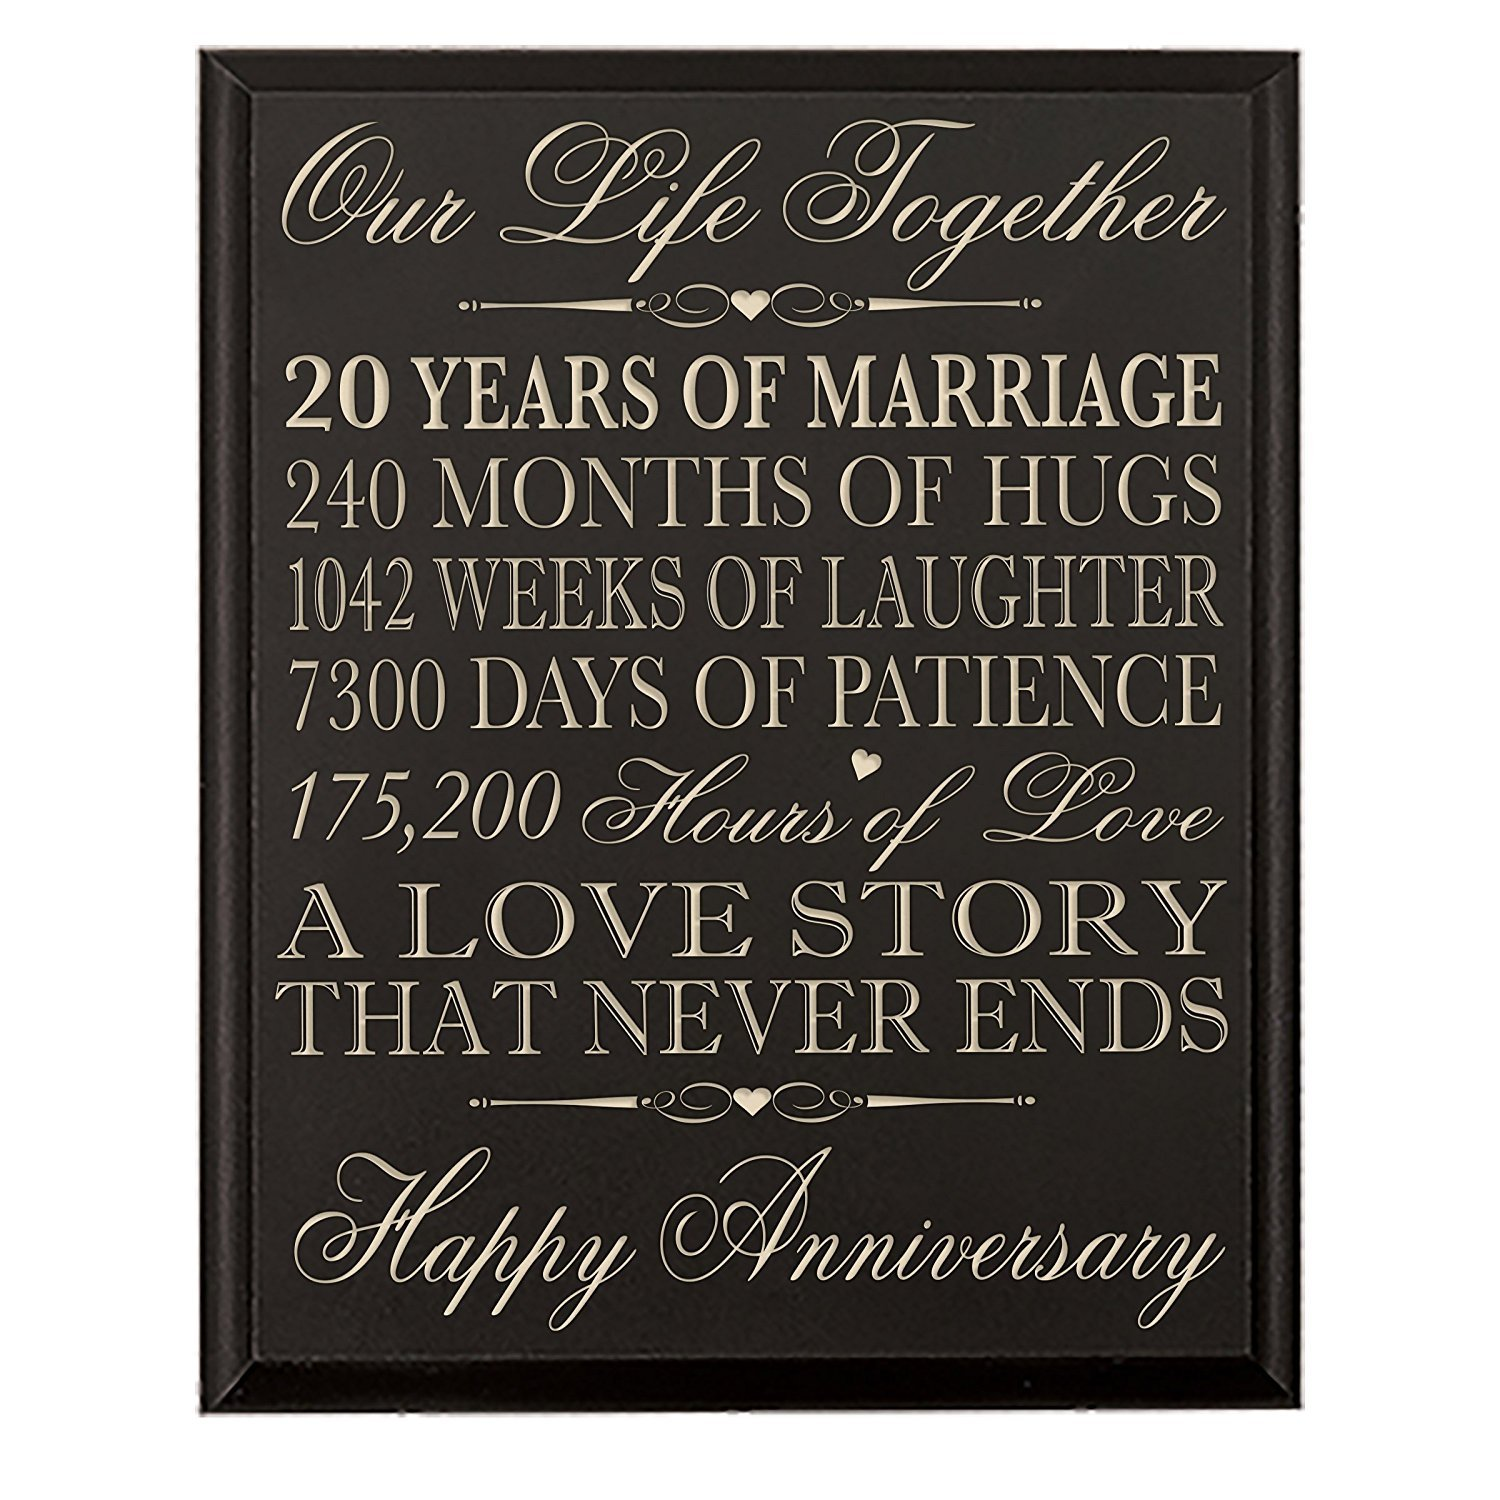 20th Wedding Anniversary Wall Plaque Gifts For Couple 20th